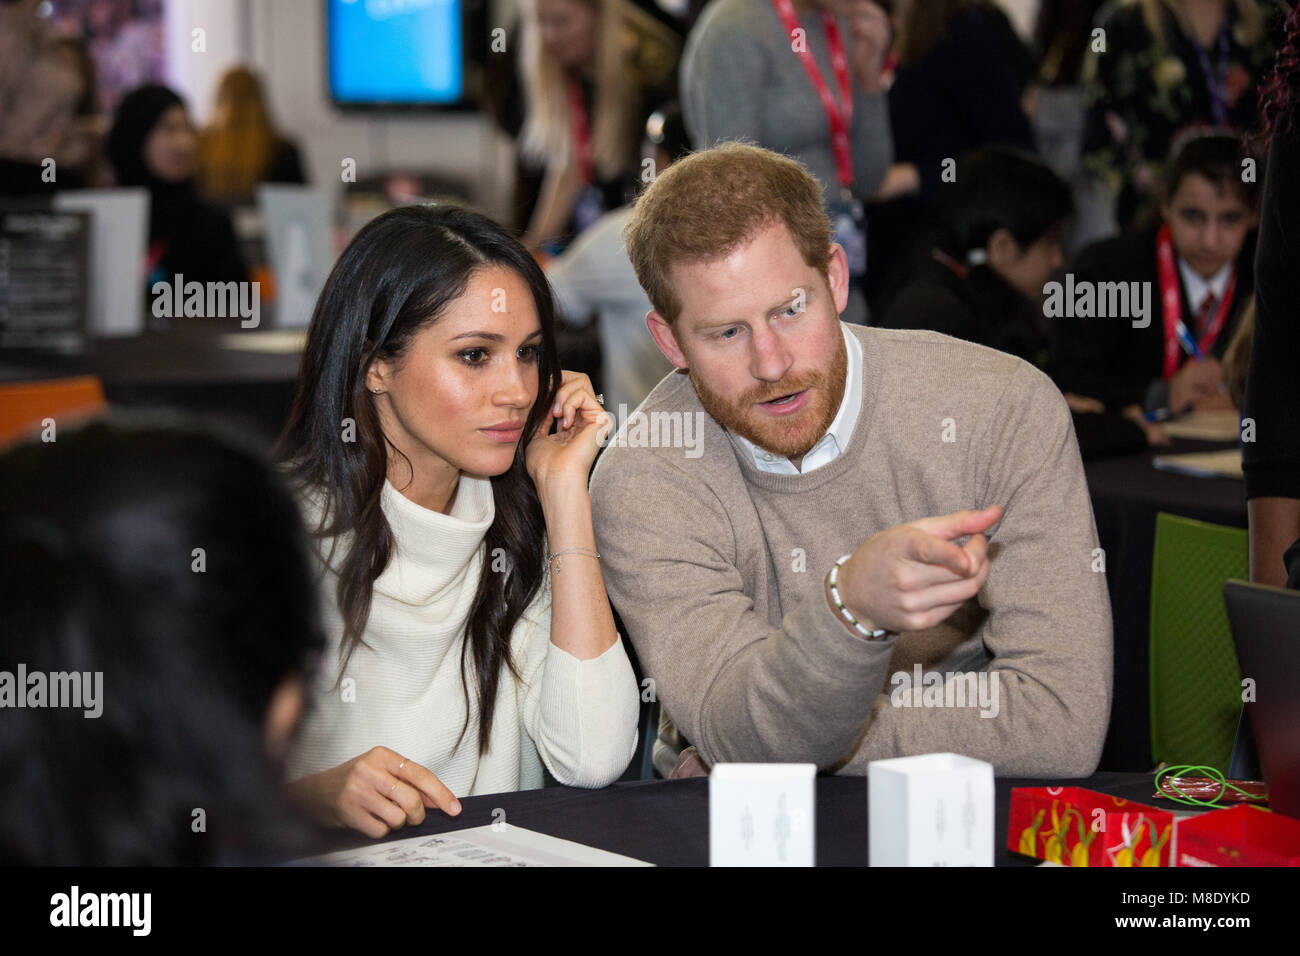 Megan Markle and Prince Harry visited Millennium Point in Birmingham on International Women's Day. The couple together Stock Photo